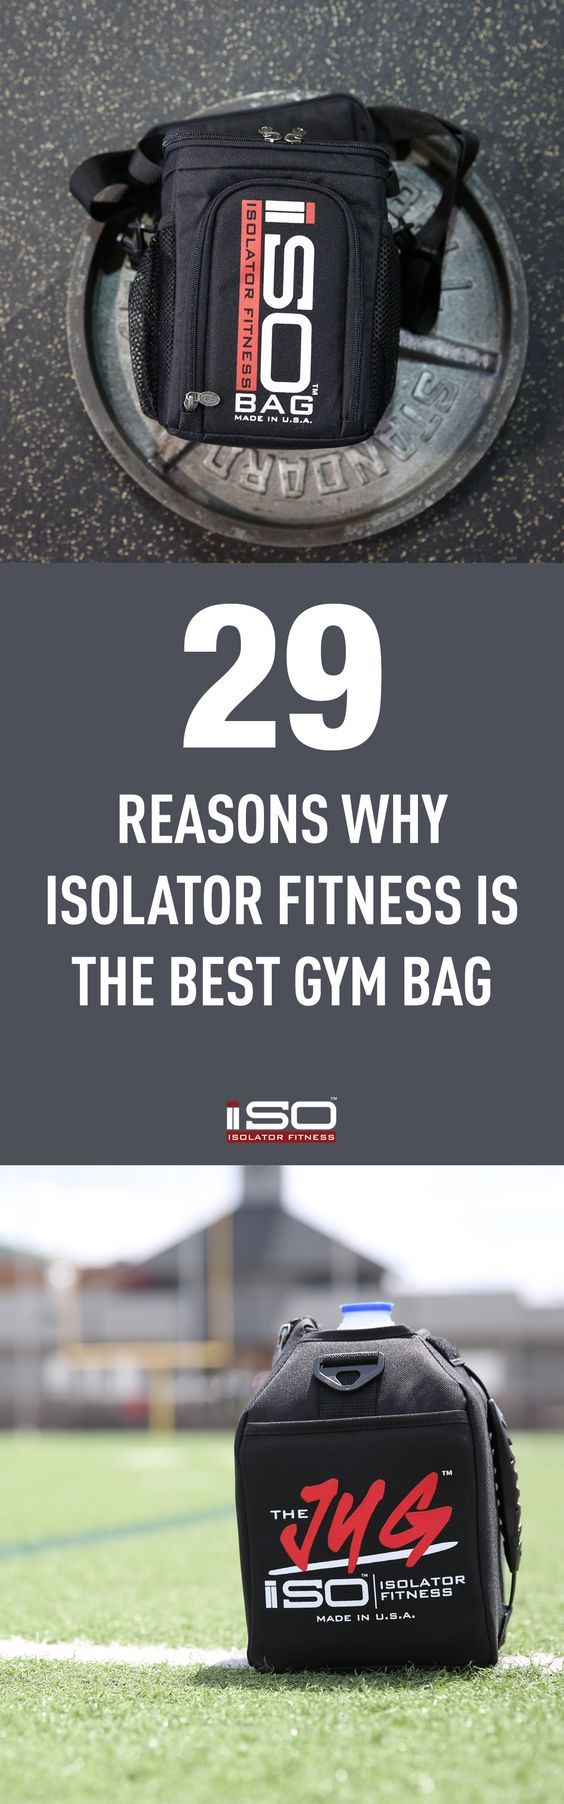 29 Reasons Why Isolator Fitness Has the Best Gym Bag For You! #fitness #gym #bag #duffel #backpack #workout